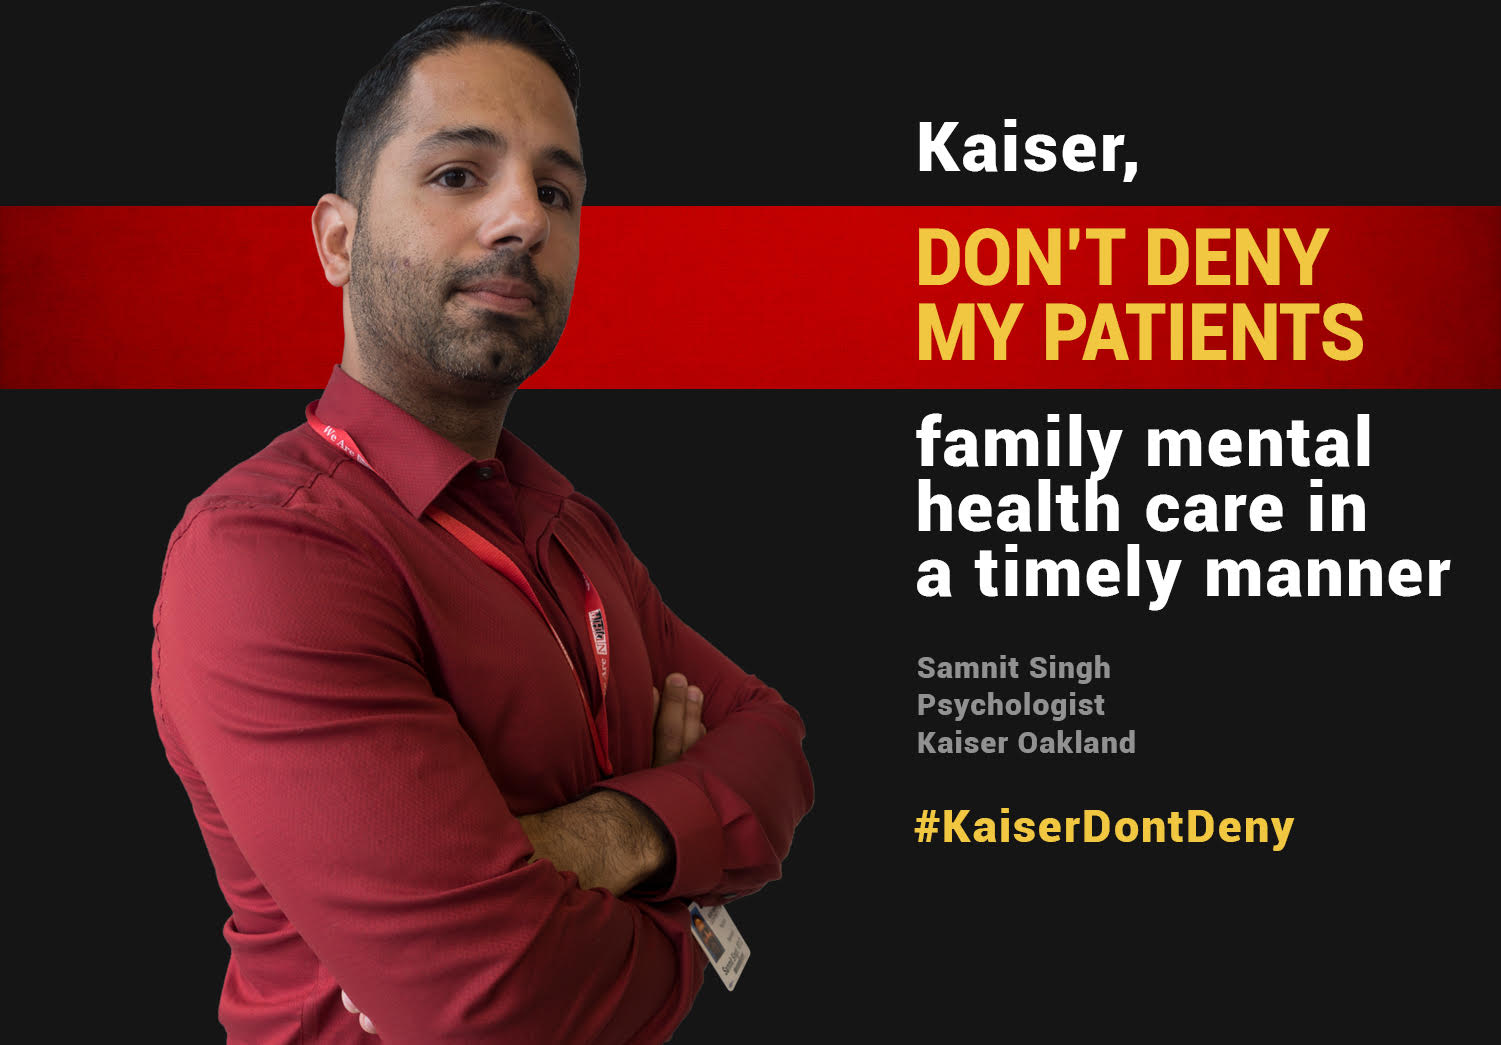 Kaiser, don't deny my patients family mental health care in a timely manner. -- Samnit Singh, Psychologist, Kaiser Oakland